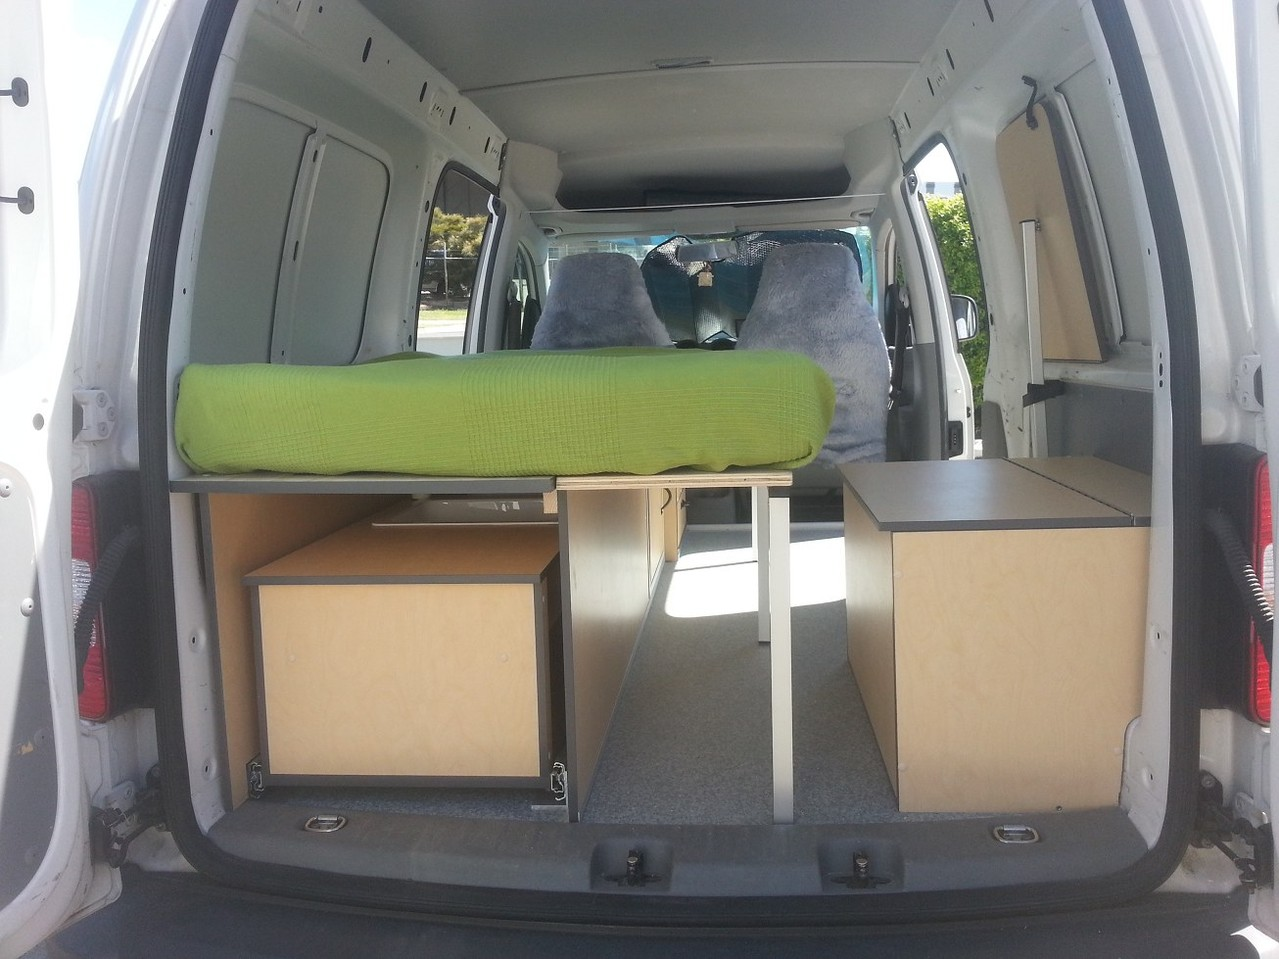 Mini Camper and weekender inside a VW Caddy